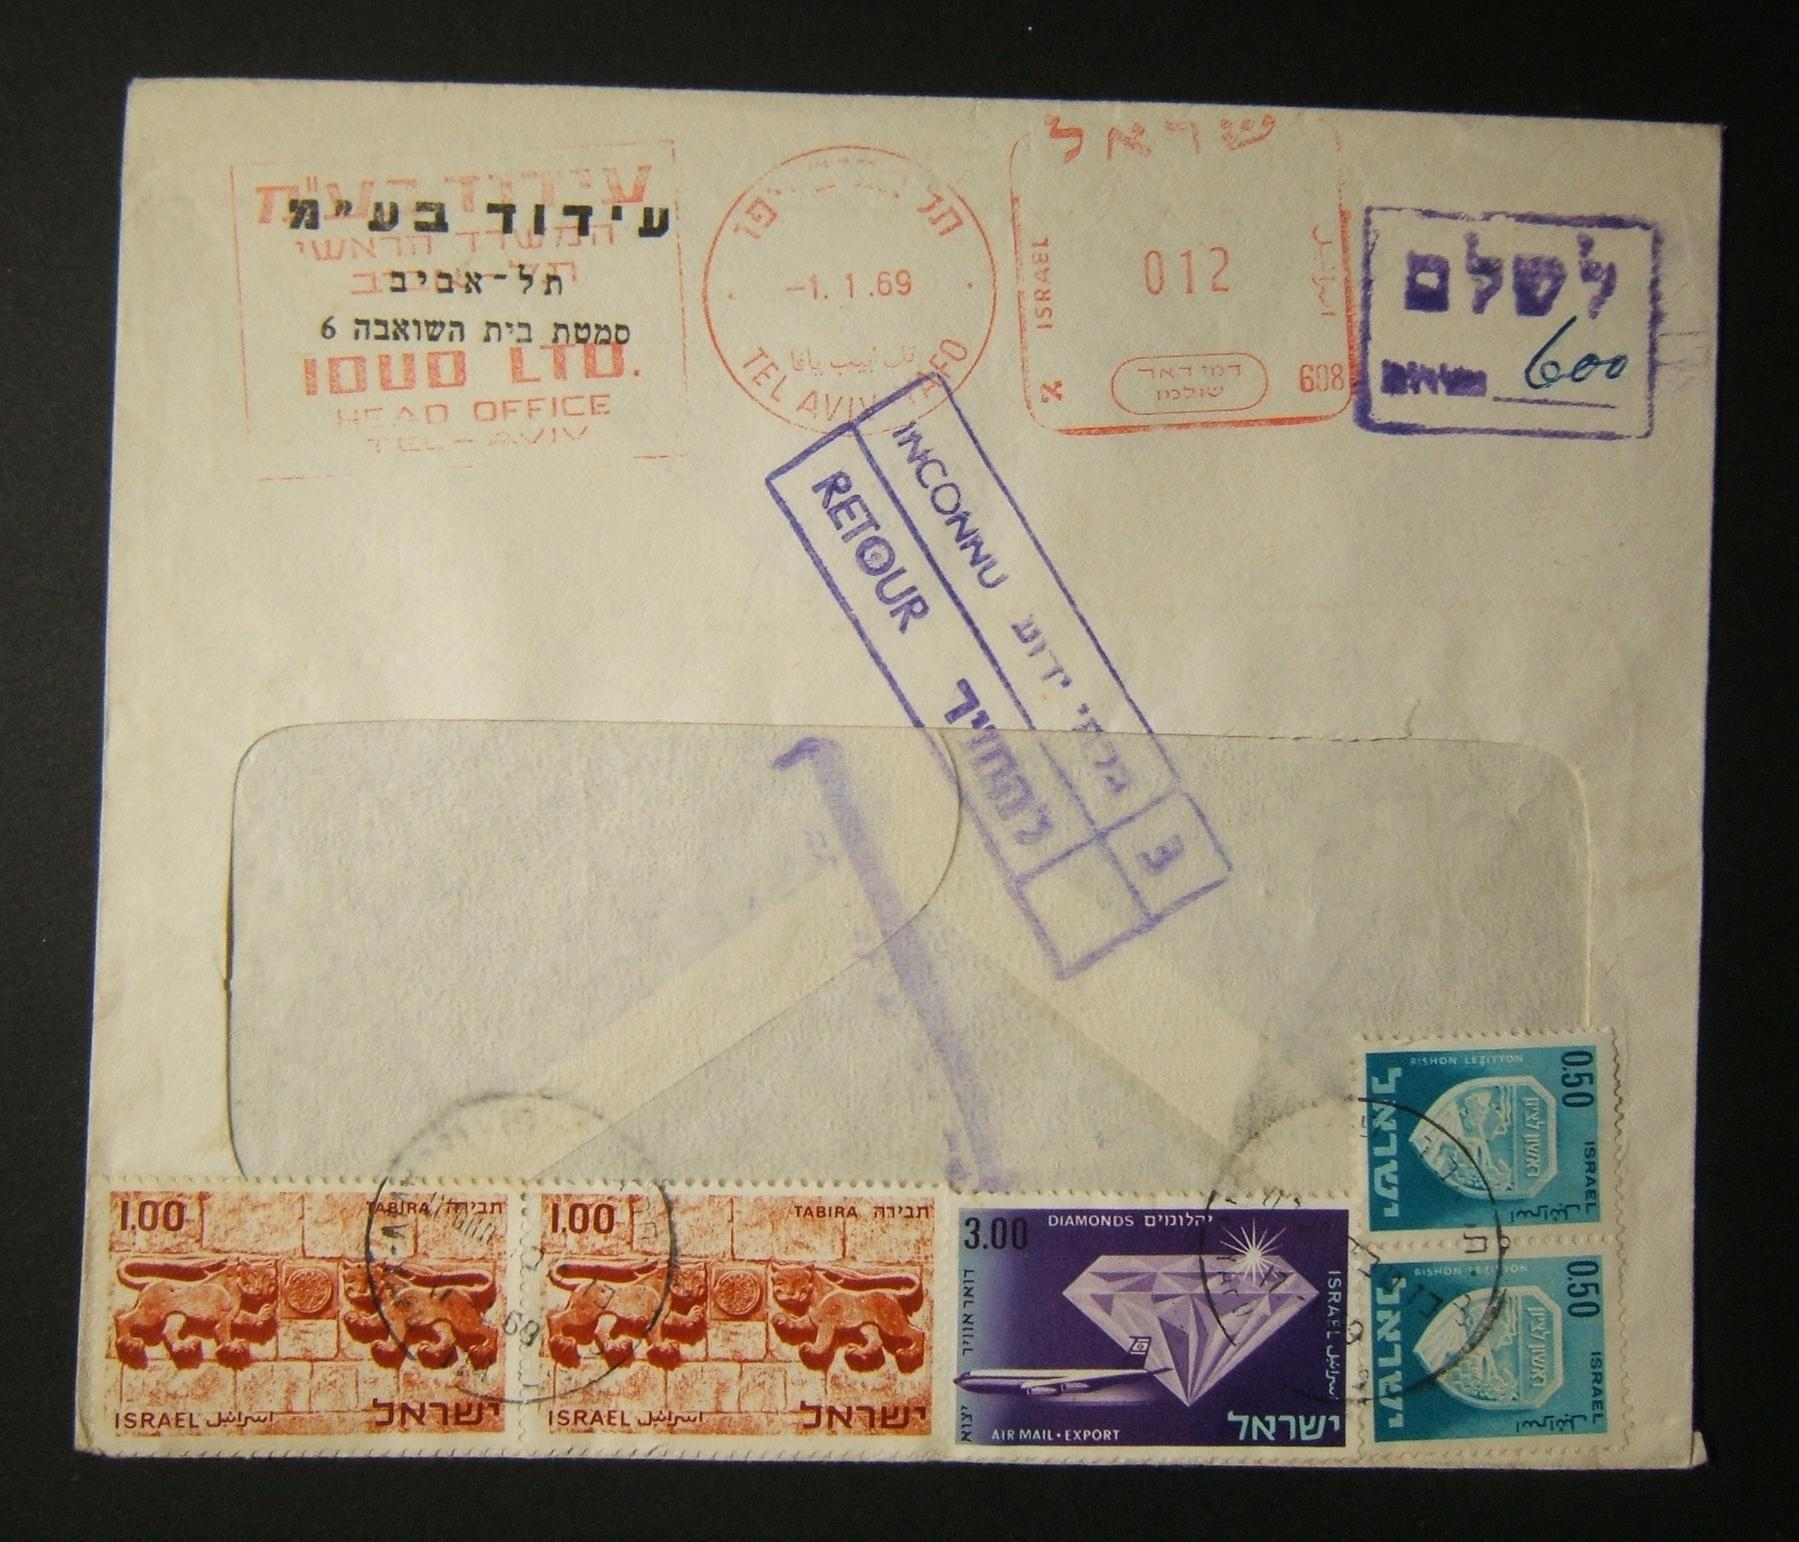 1969 domestic 'top of the pile' taxed franking: 1-1-69 printed matter cover ex TLV branch of Idud Ltd. franked by machine prepayment at domestic 12 Ag PM rate, but returned to send